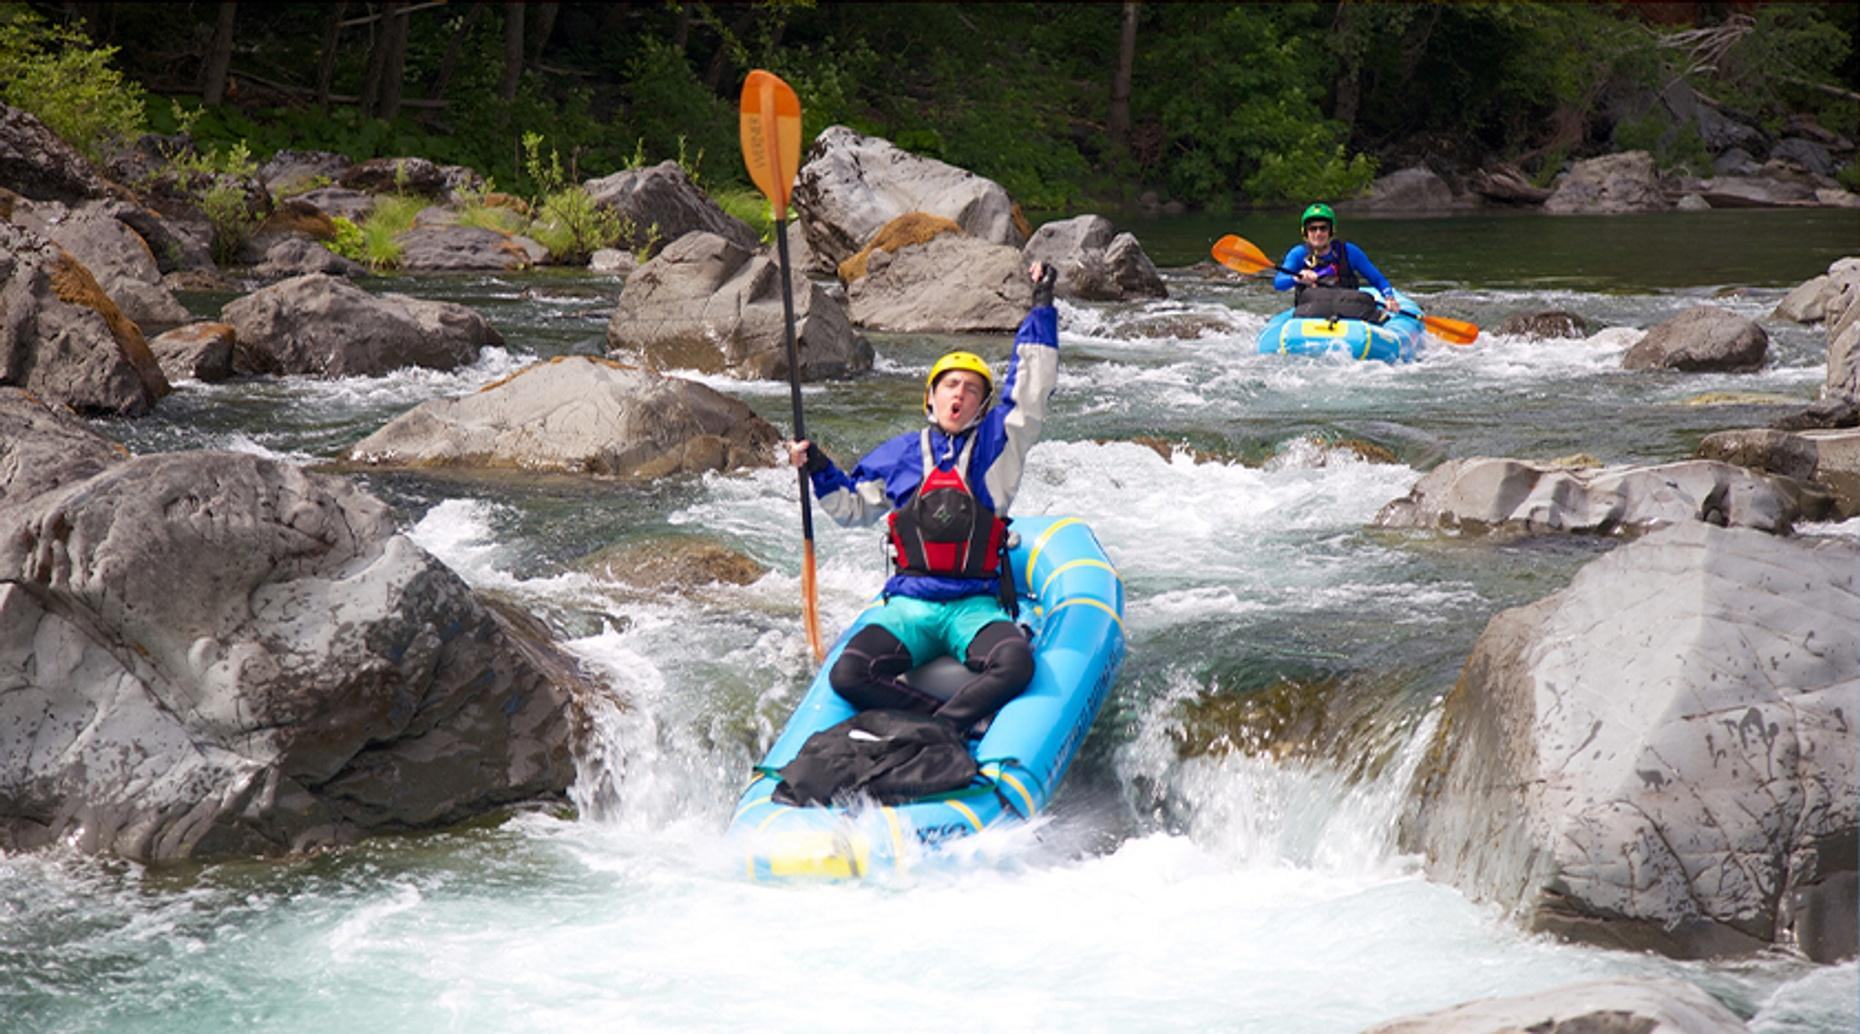 Upper Lehigh River Whitewater Rafting Adventure